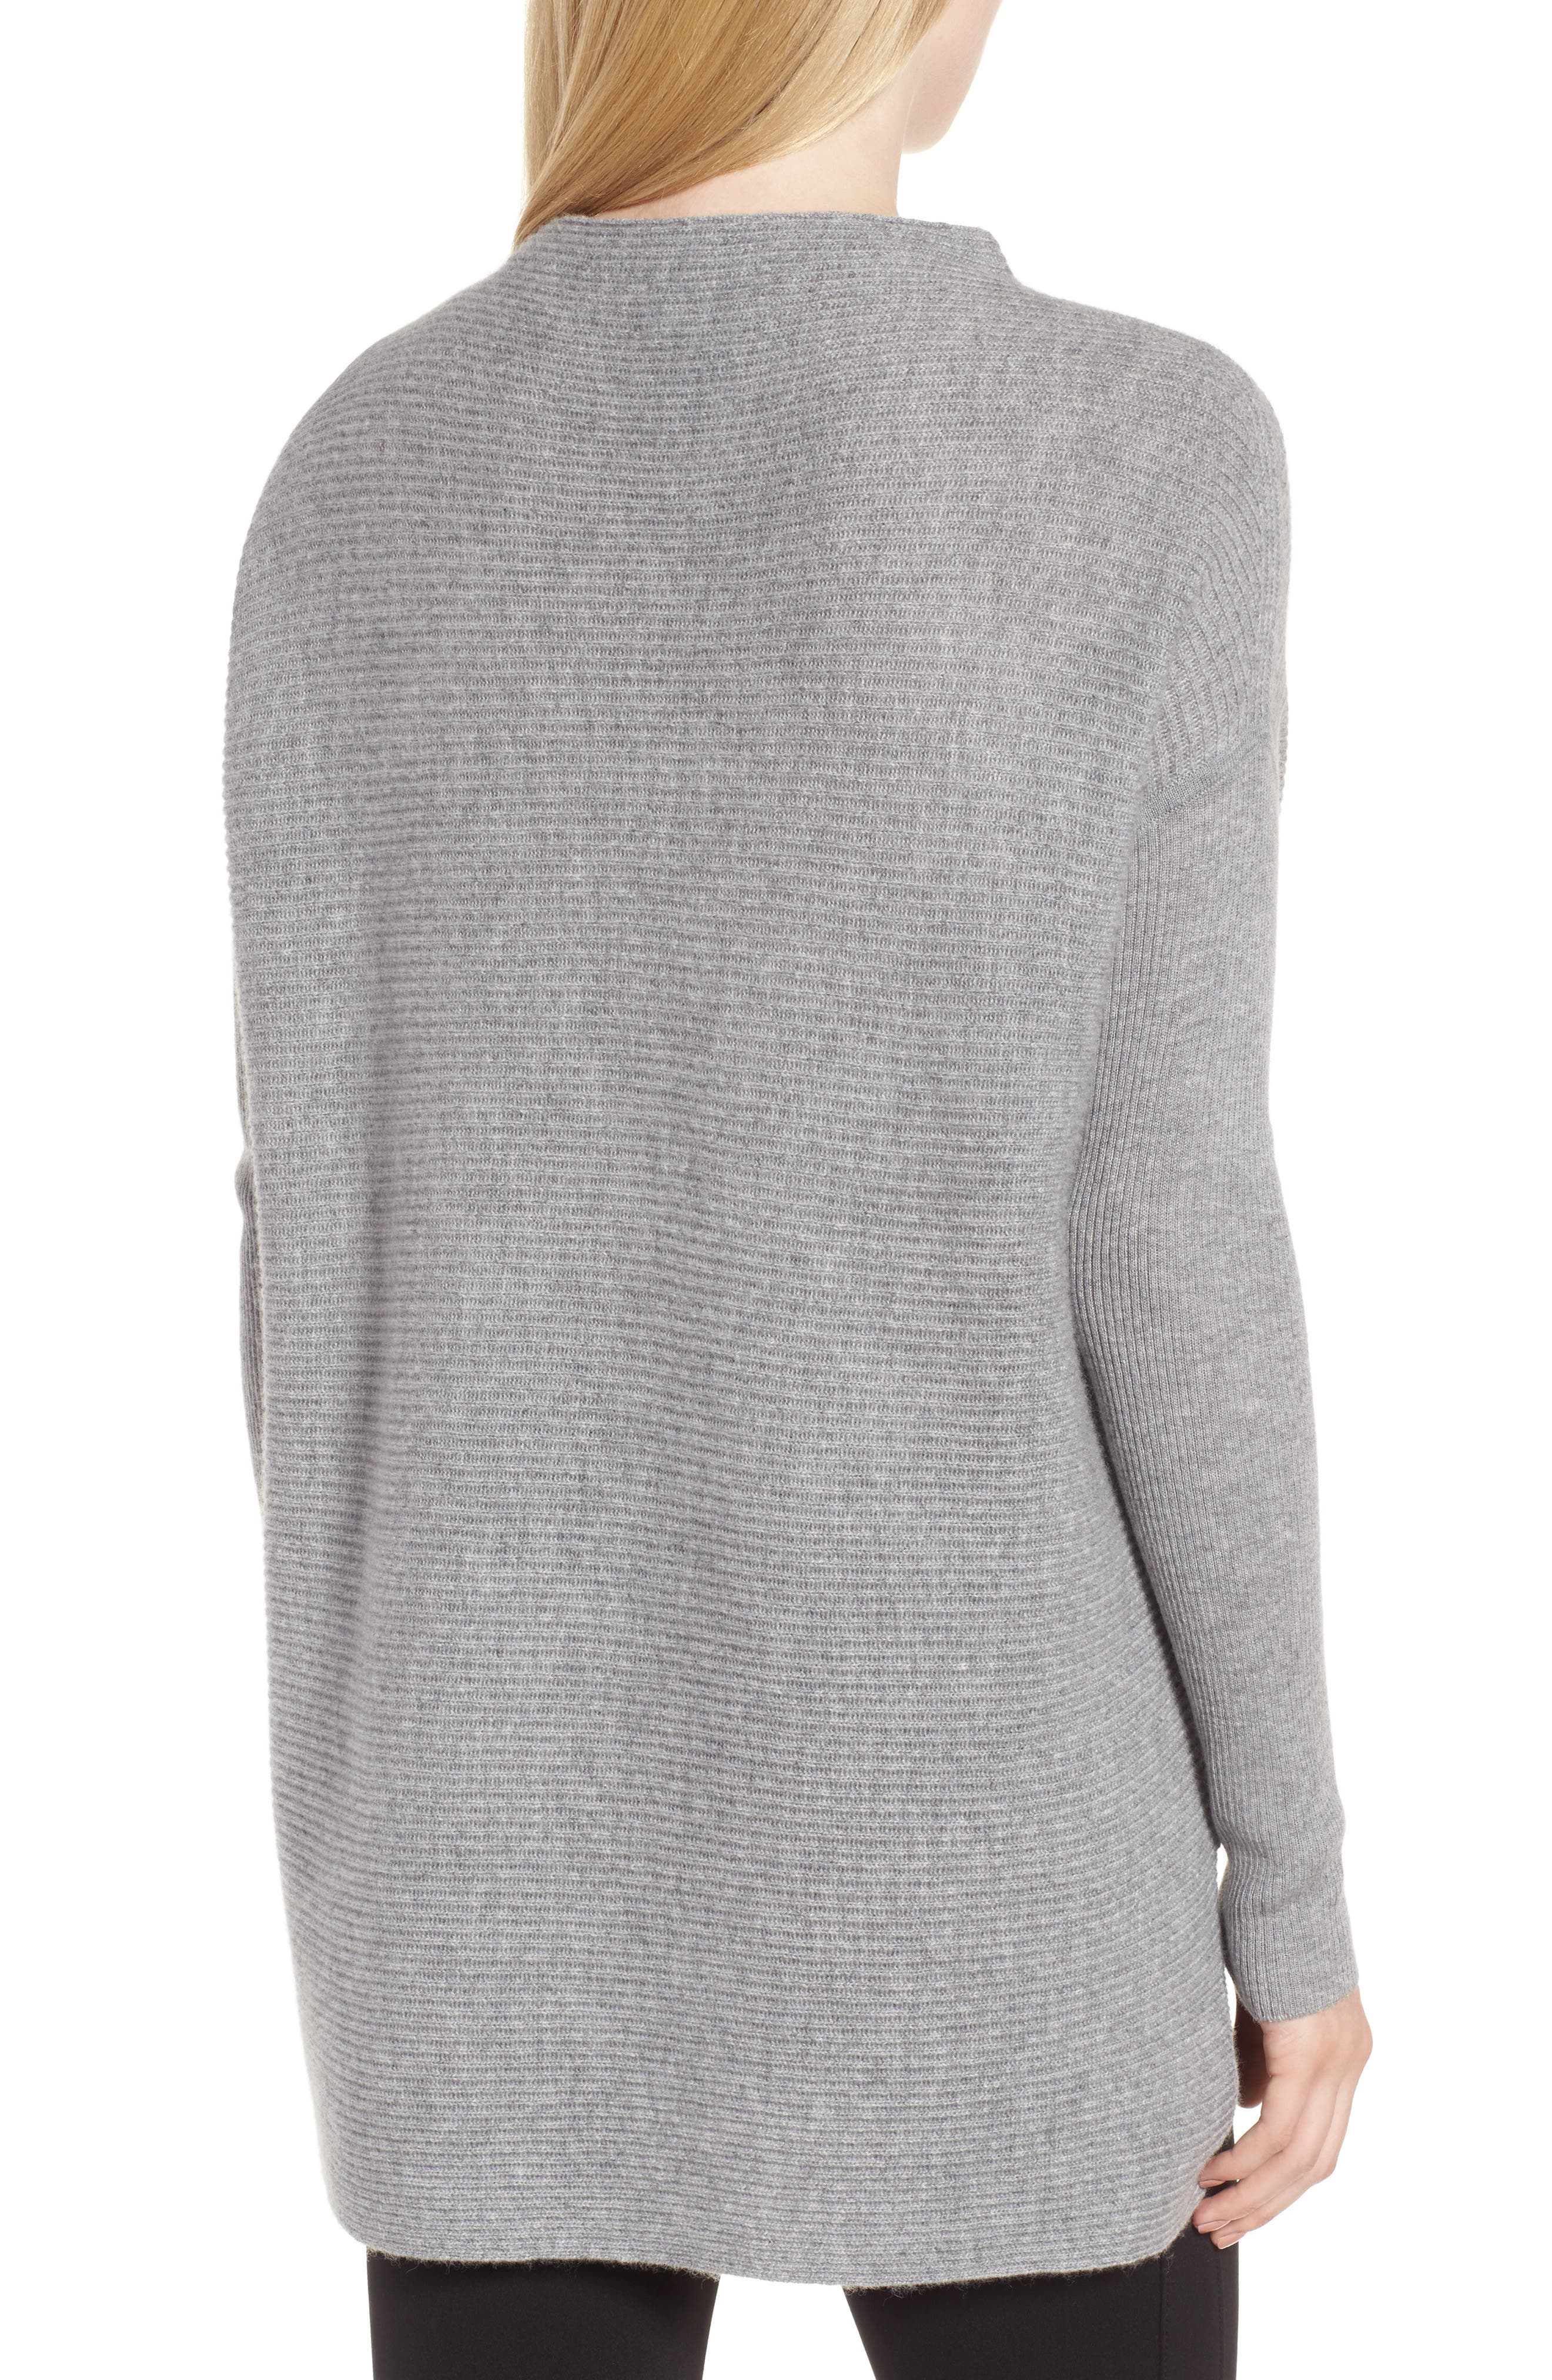 NORDSTROM SIGNATURE, Cashmere Asymmetrical Pullover, Alternate thumbnail 2, color, GREY FILIGREE HEATHER